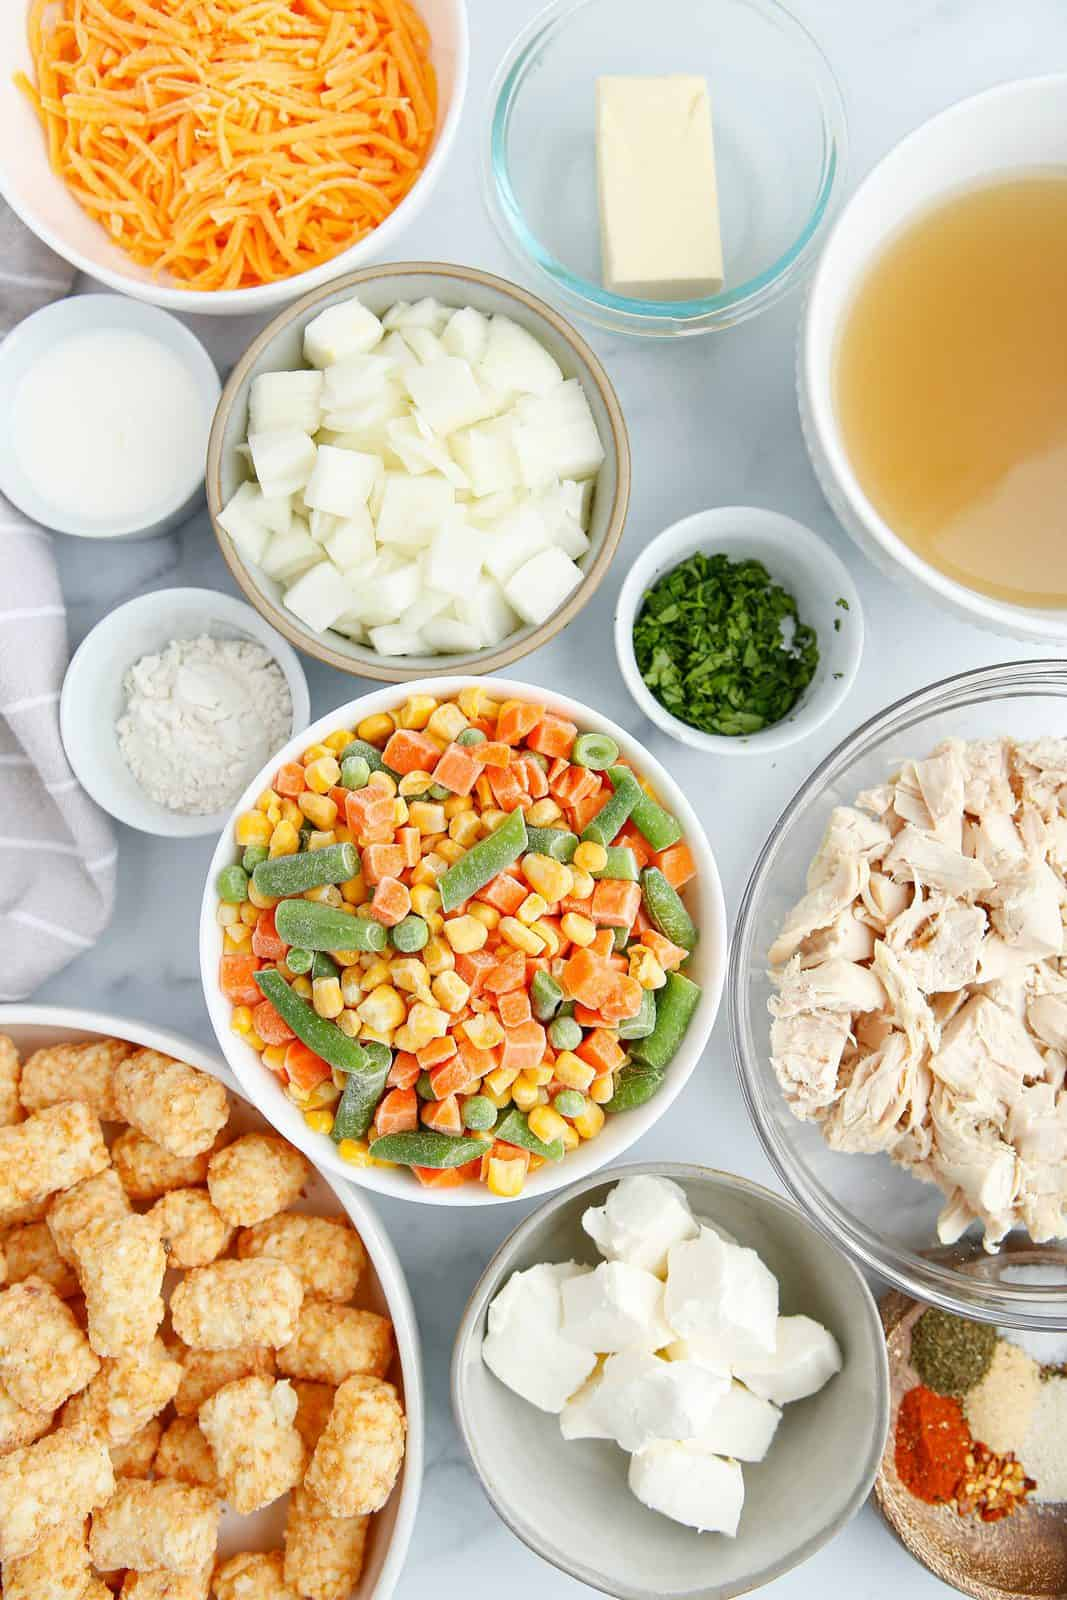 Ingredients needed: butter, rotisserie chicken, yellow onion, all-purpose flour, chicken stock, milk frozen mixed vegetables, cream cheese, paprika, onion powder, garlic powder, dried dill, dried thyme, salt, pepper, frozen tater tots, cheddar cheese and parsley.